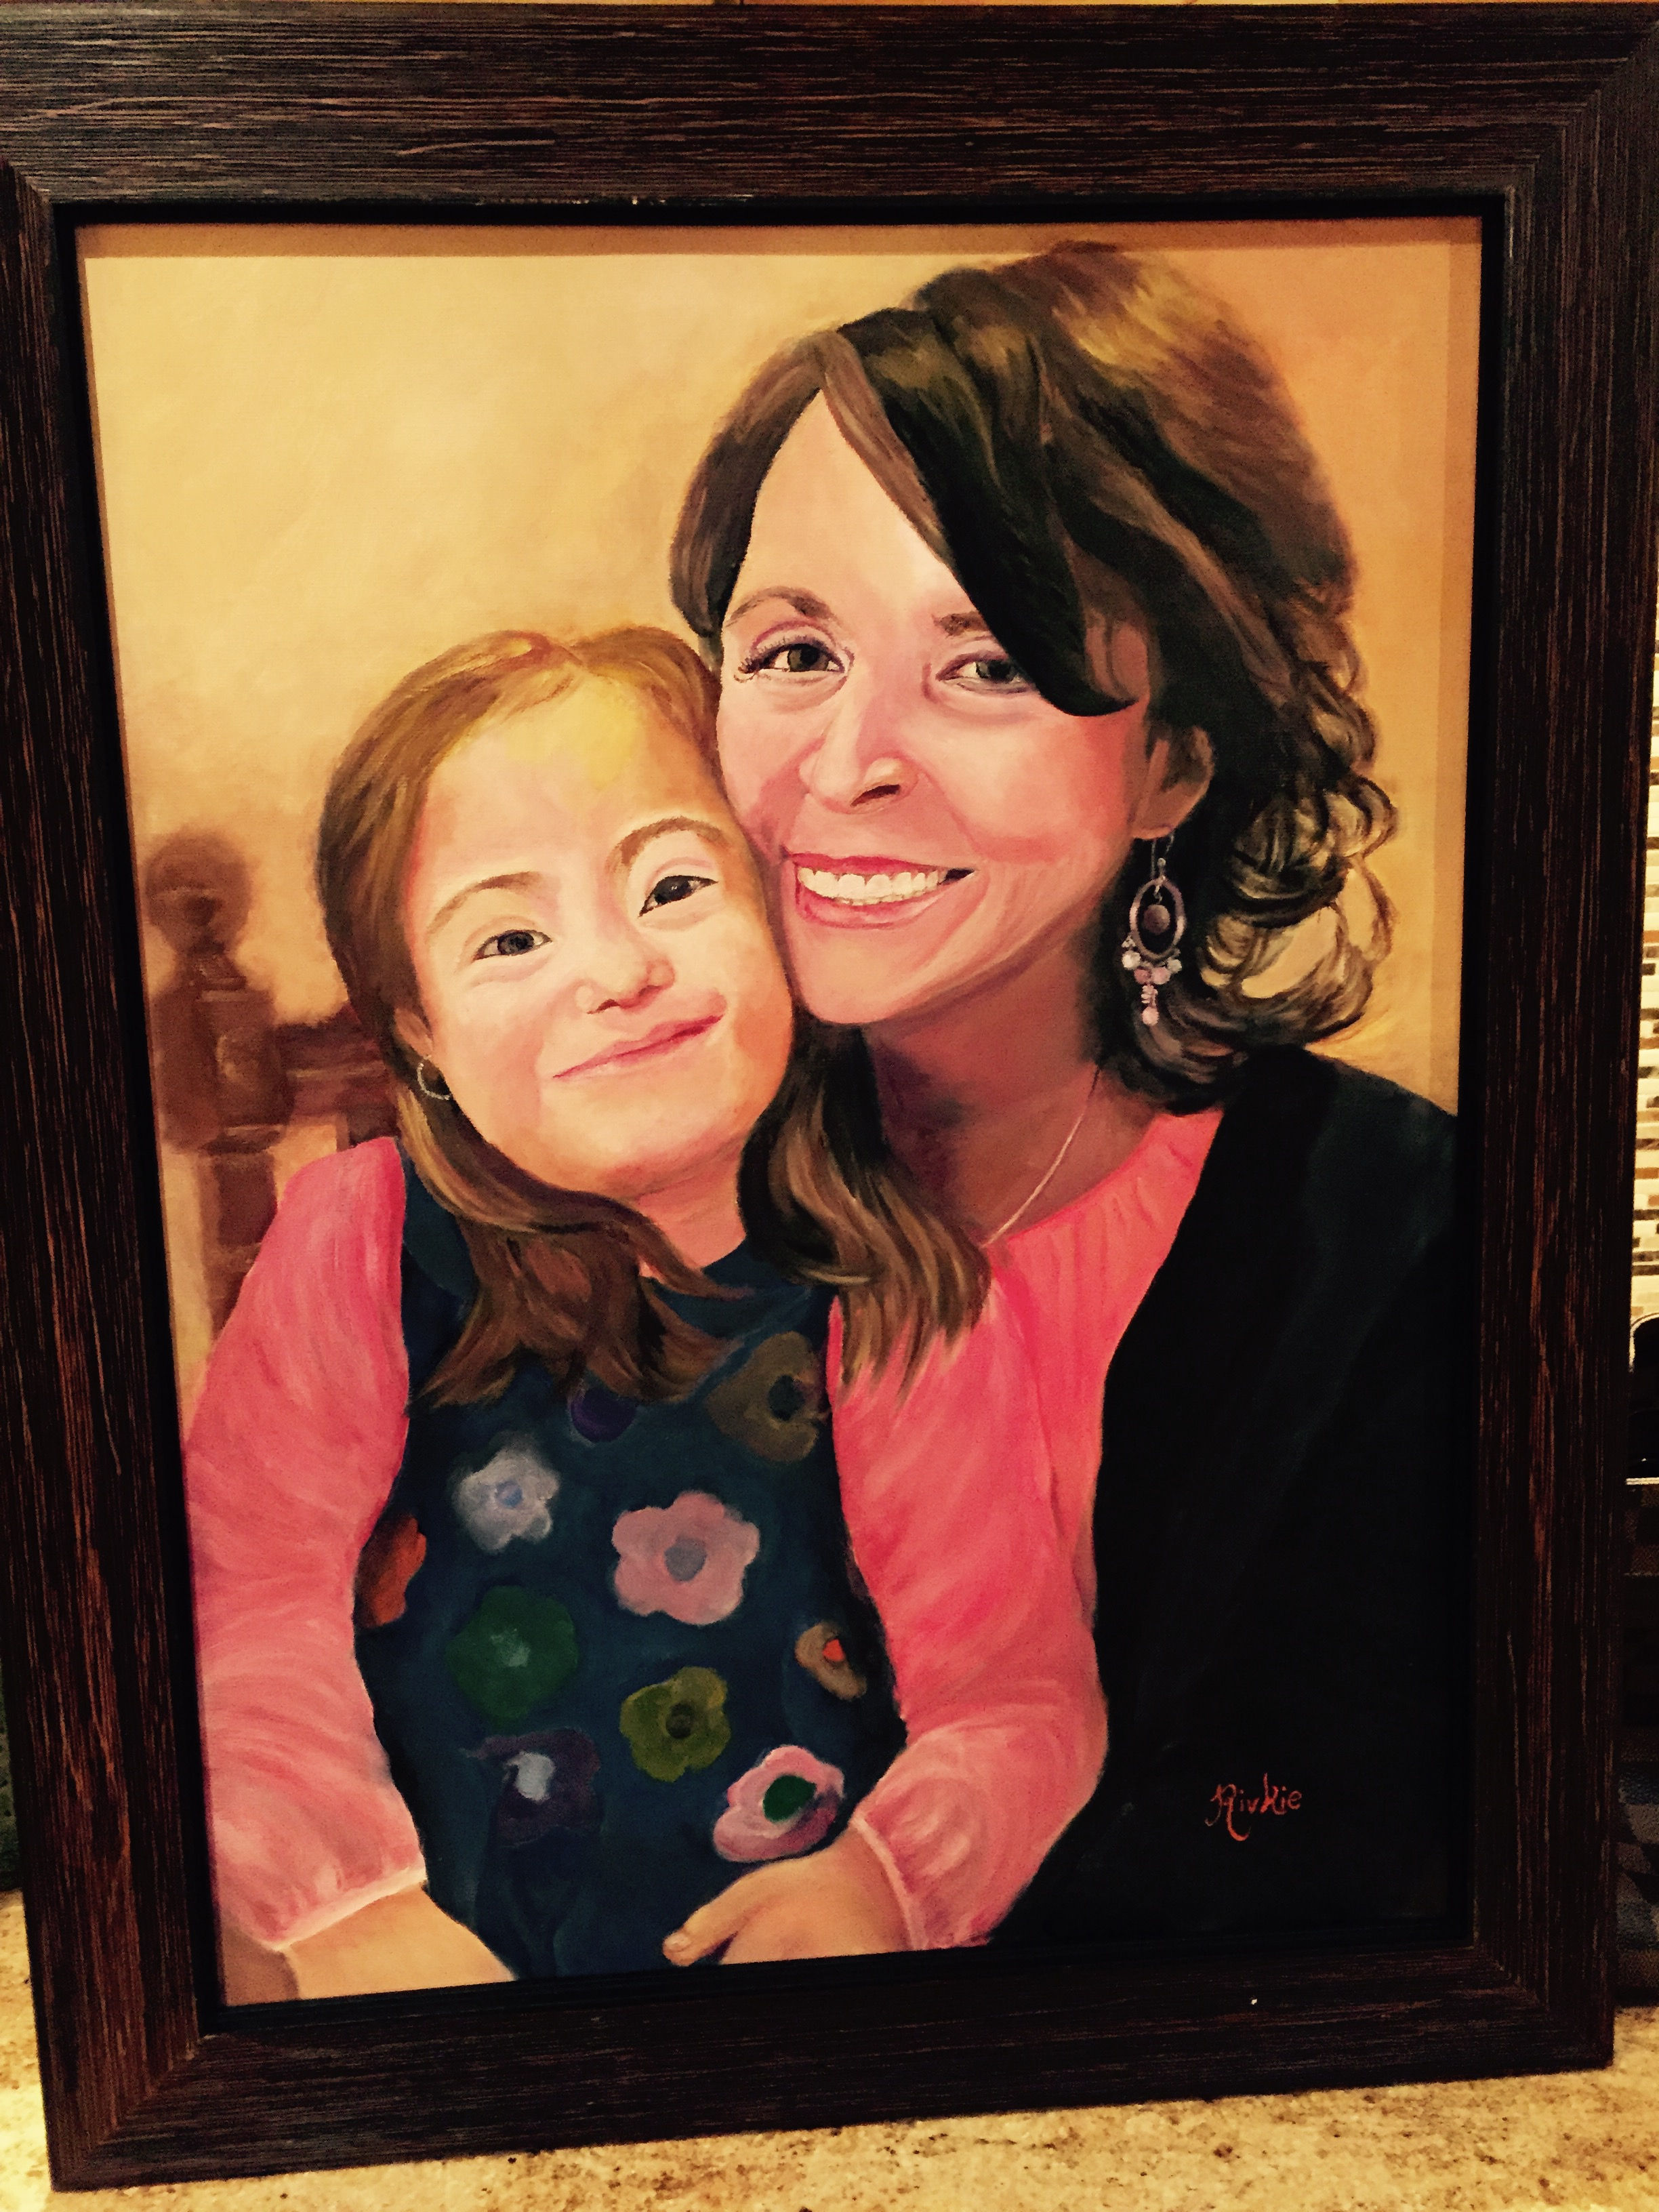 This is a hand painted portrait that Chaya's foster mom made for my mother as a way to thank to her for all that she does for Chaya. It was a beautiful gift.